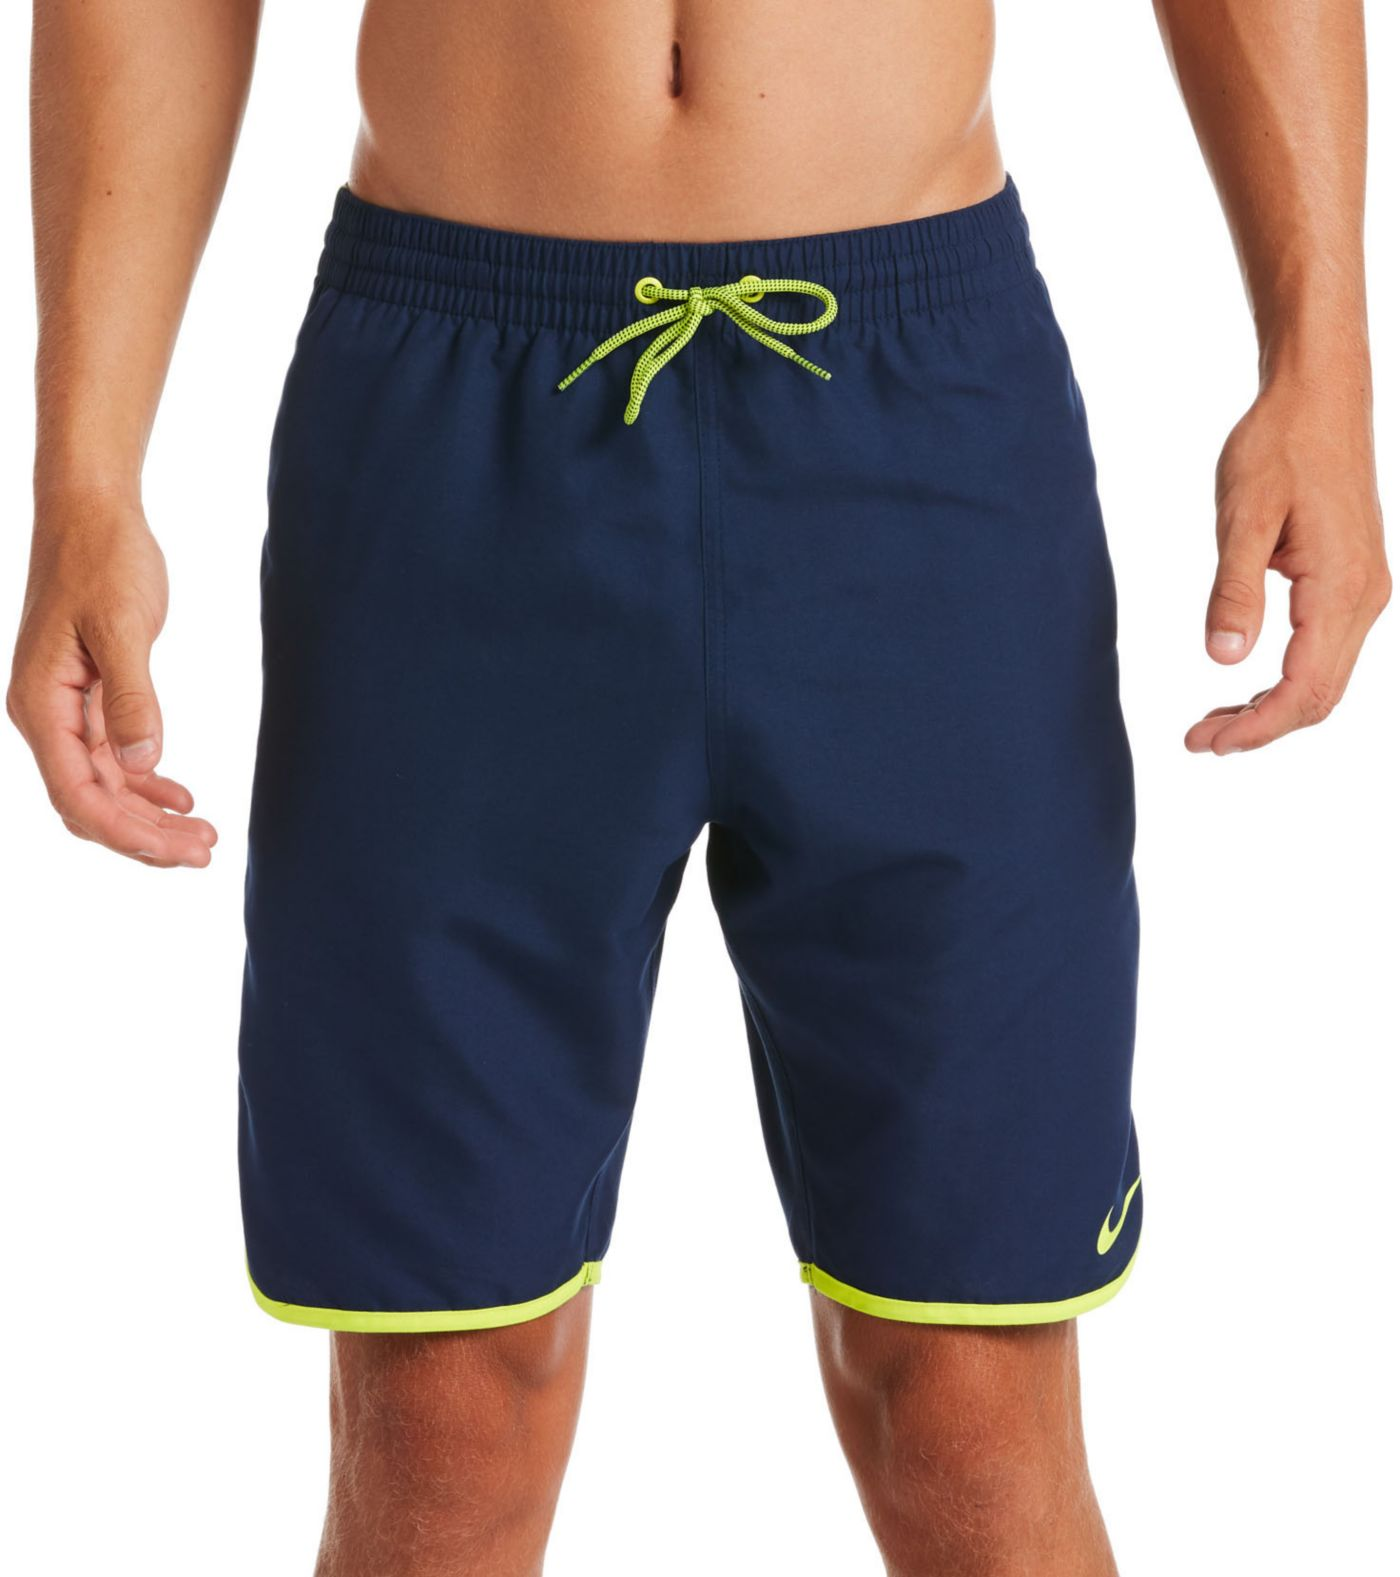 Nike Men's Diverge Volley Swim Trunks